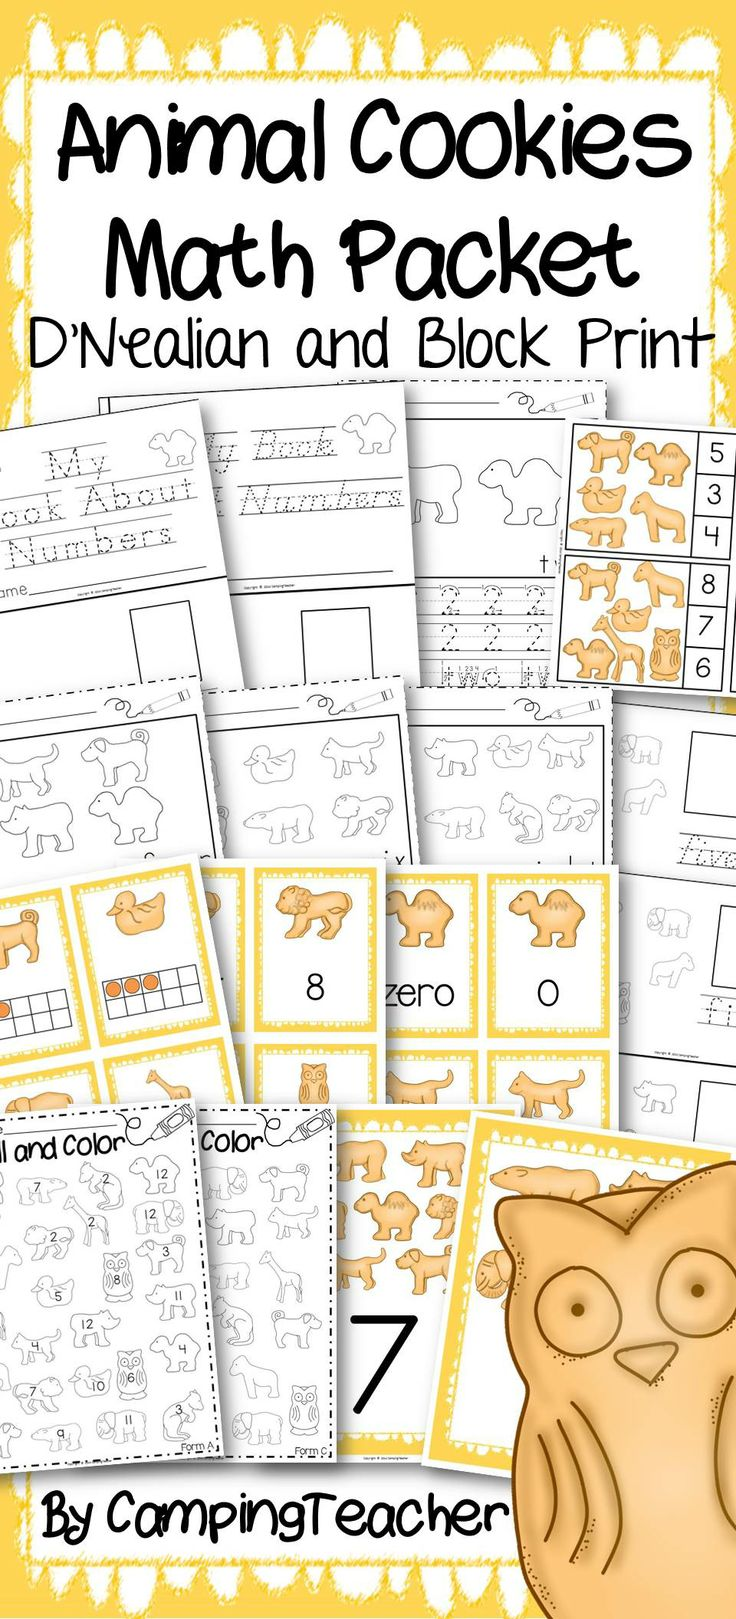 Animal Cookies Math Packet.  Handwriting, Number cards matching, posters, math centers.